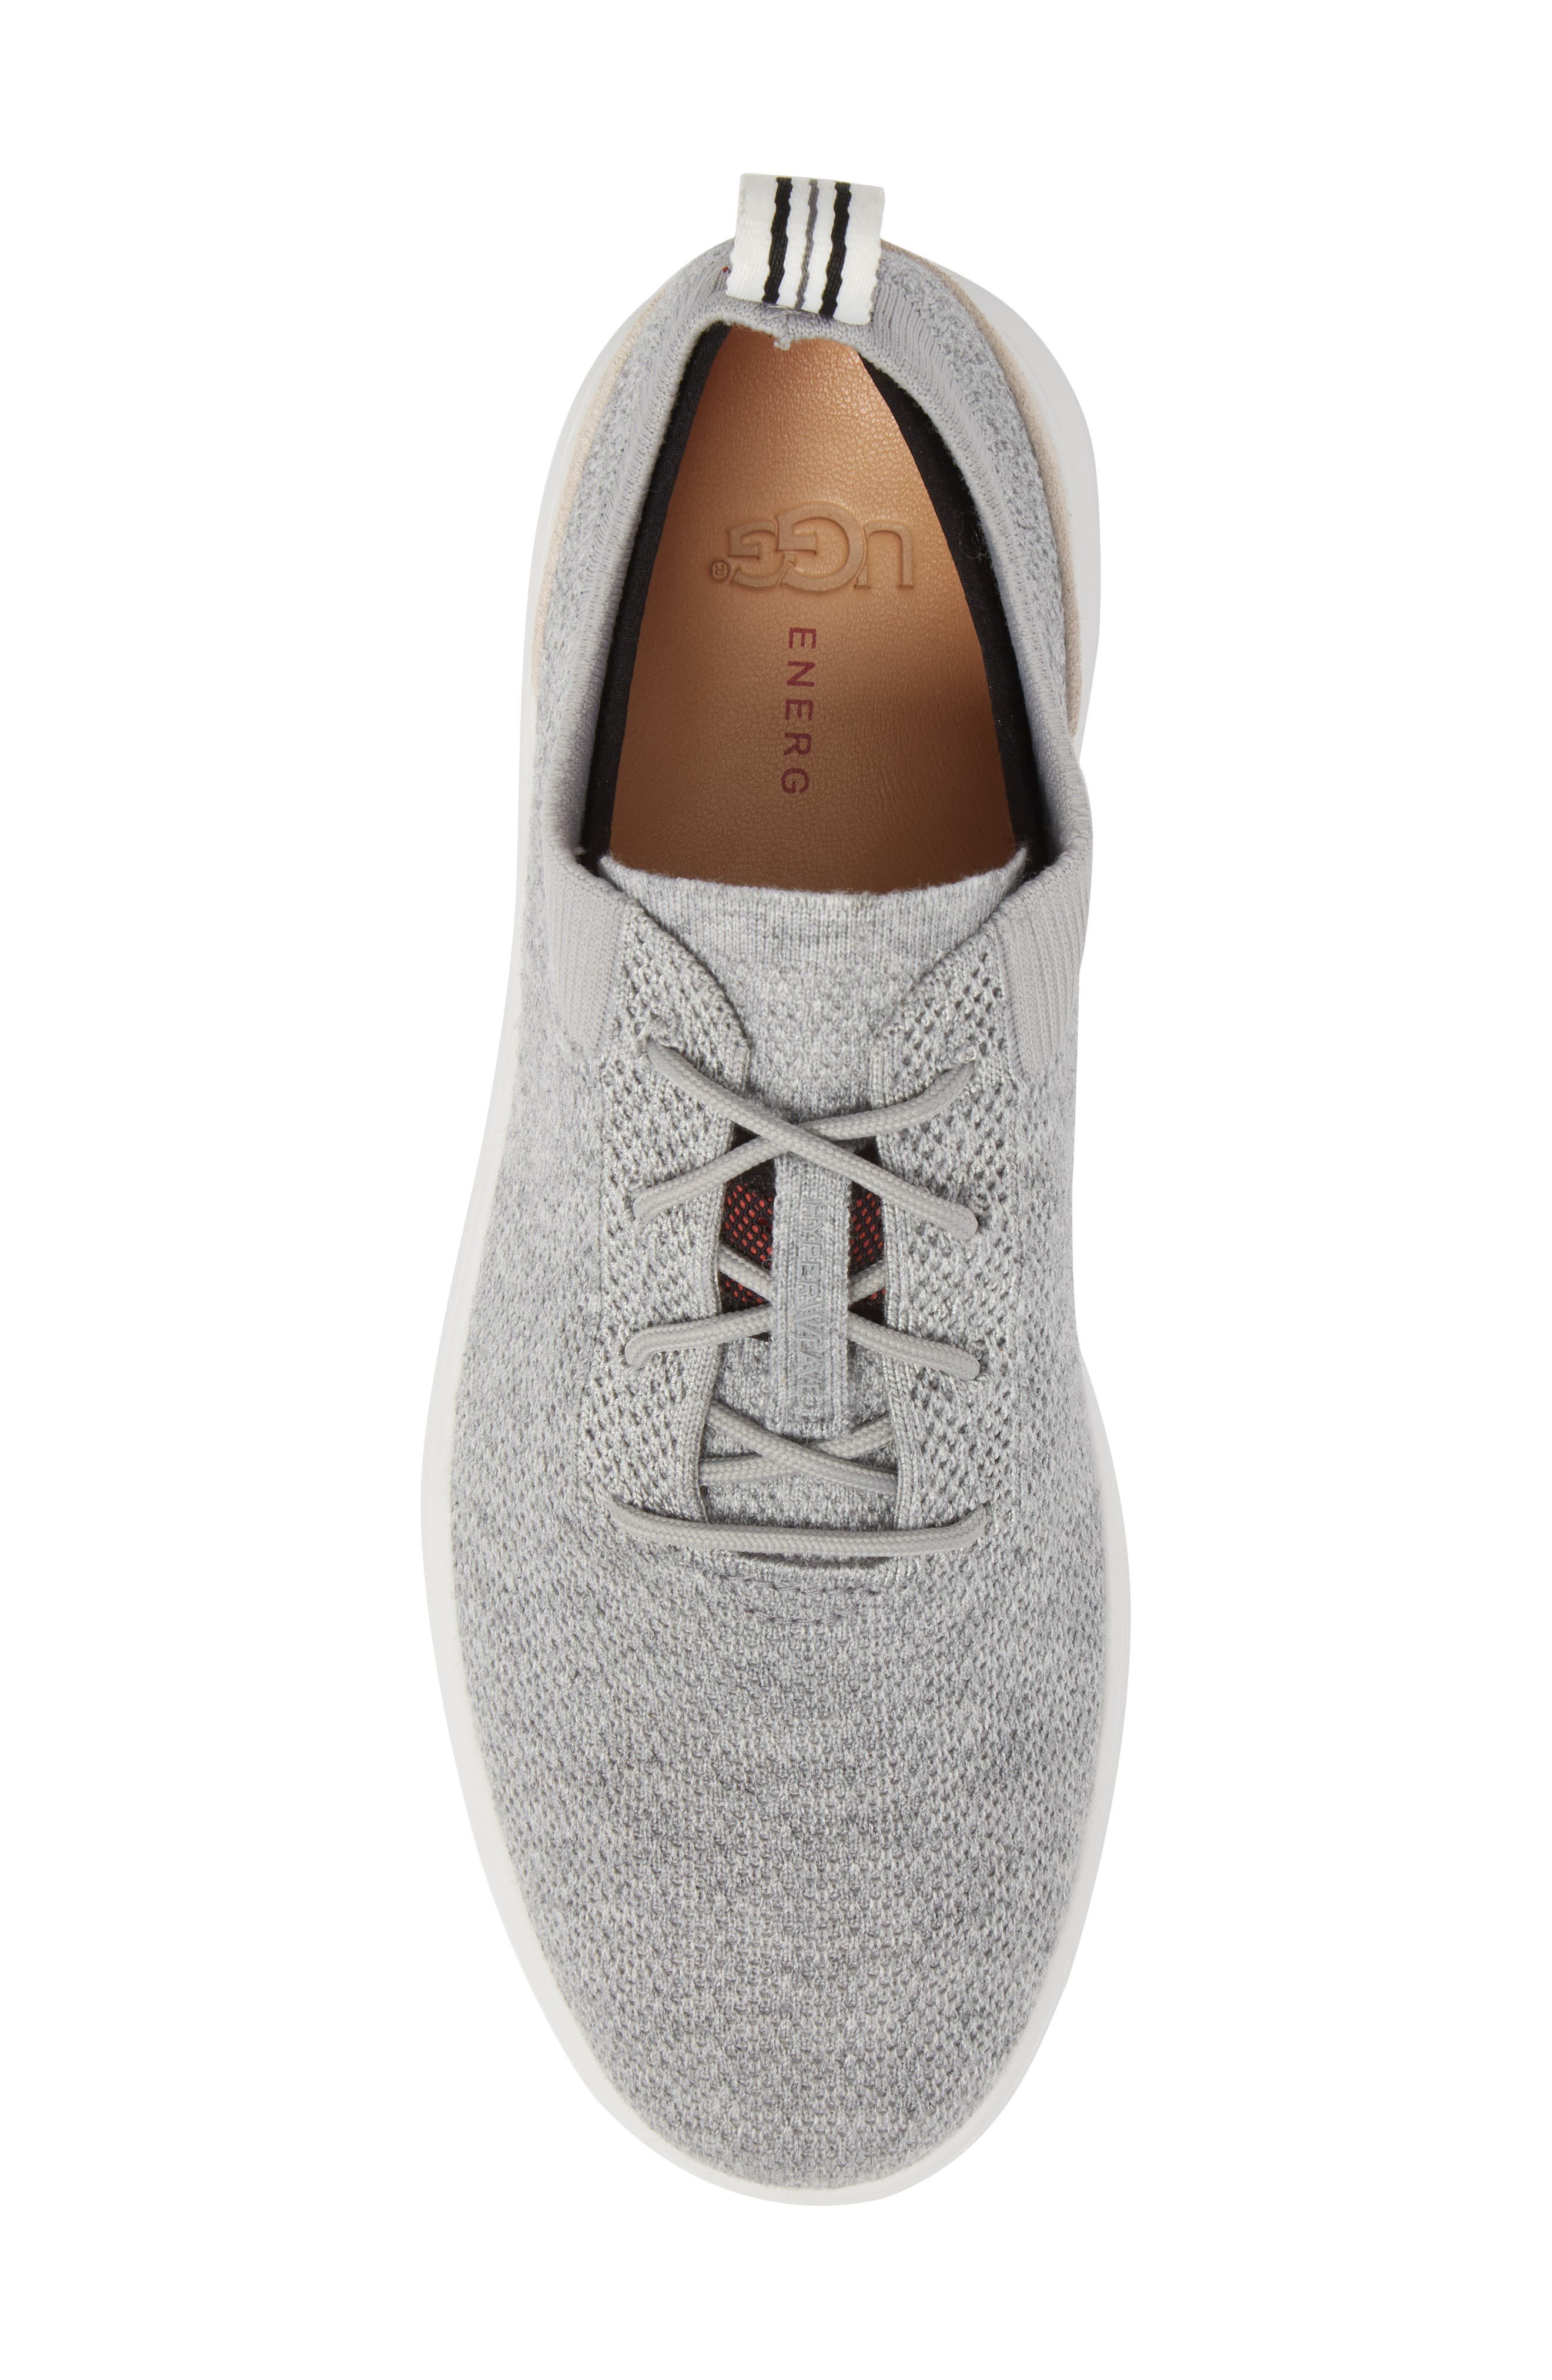 Feli HyperWeave Sneaker,                             Alternate thumbnail 5, color,                             SEAL LEATHER